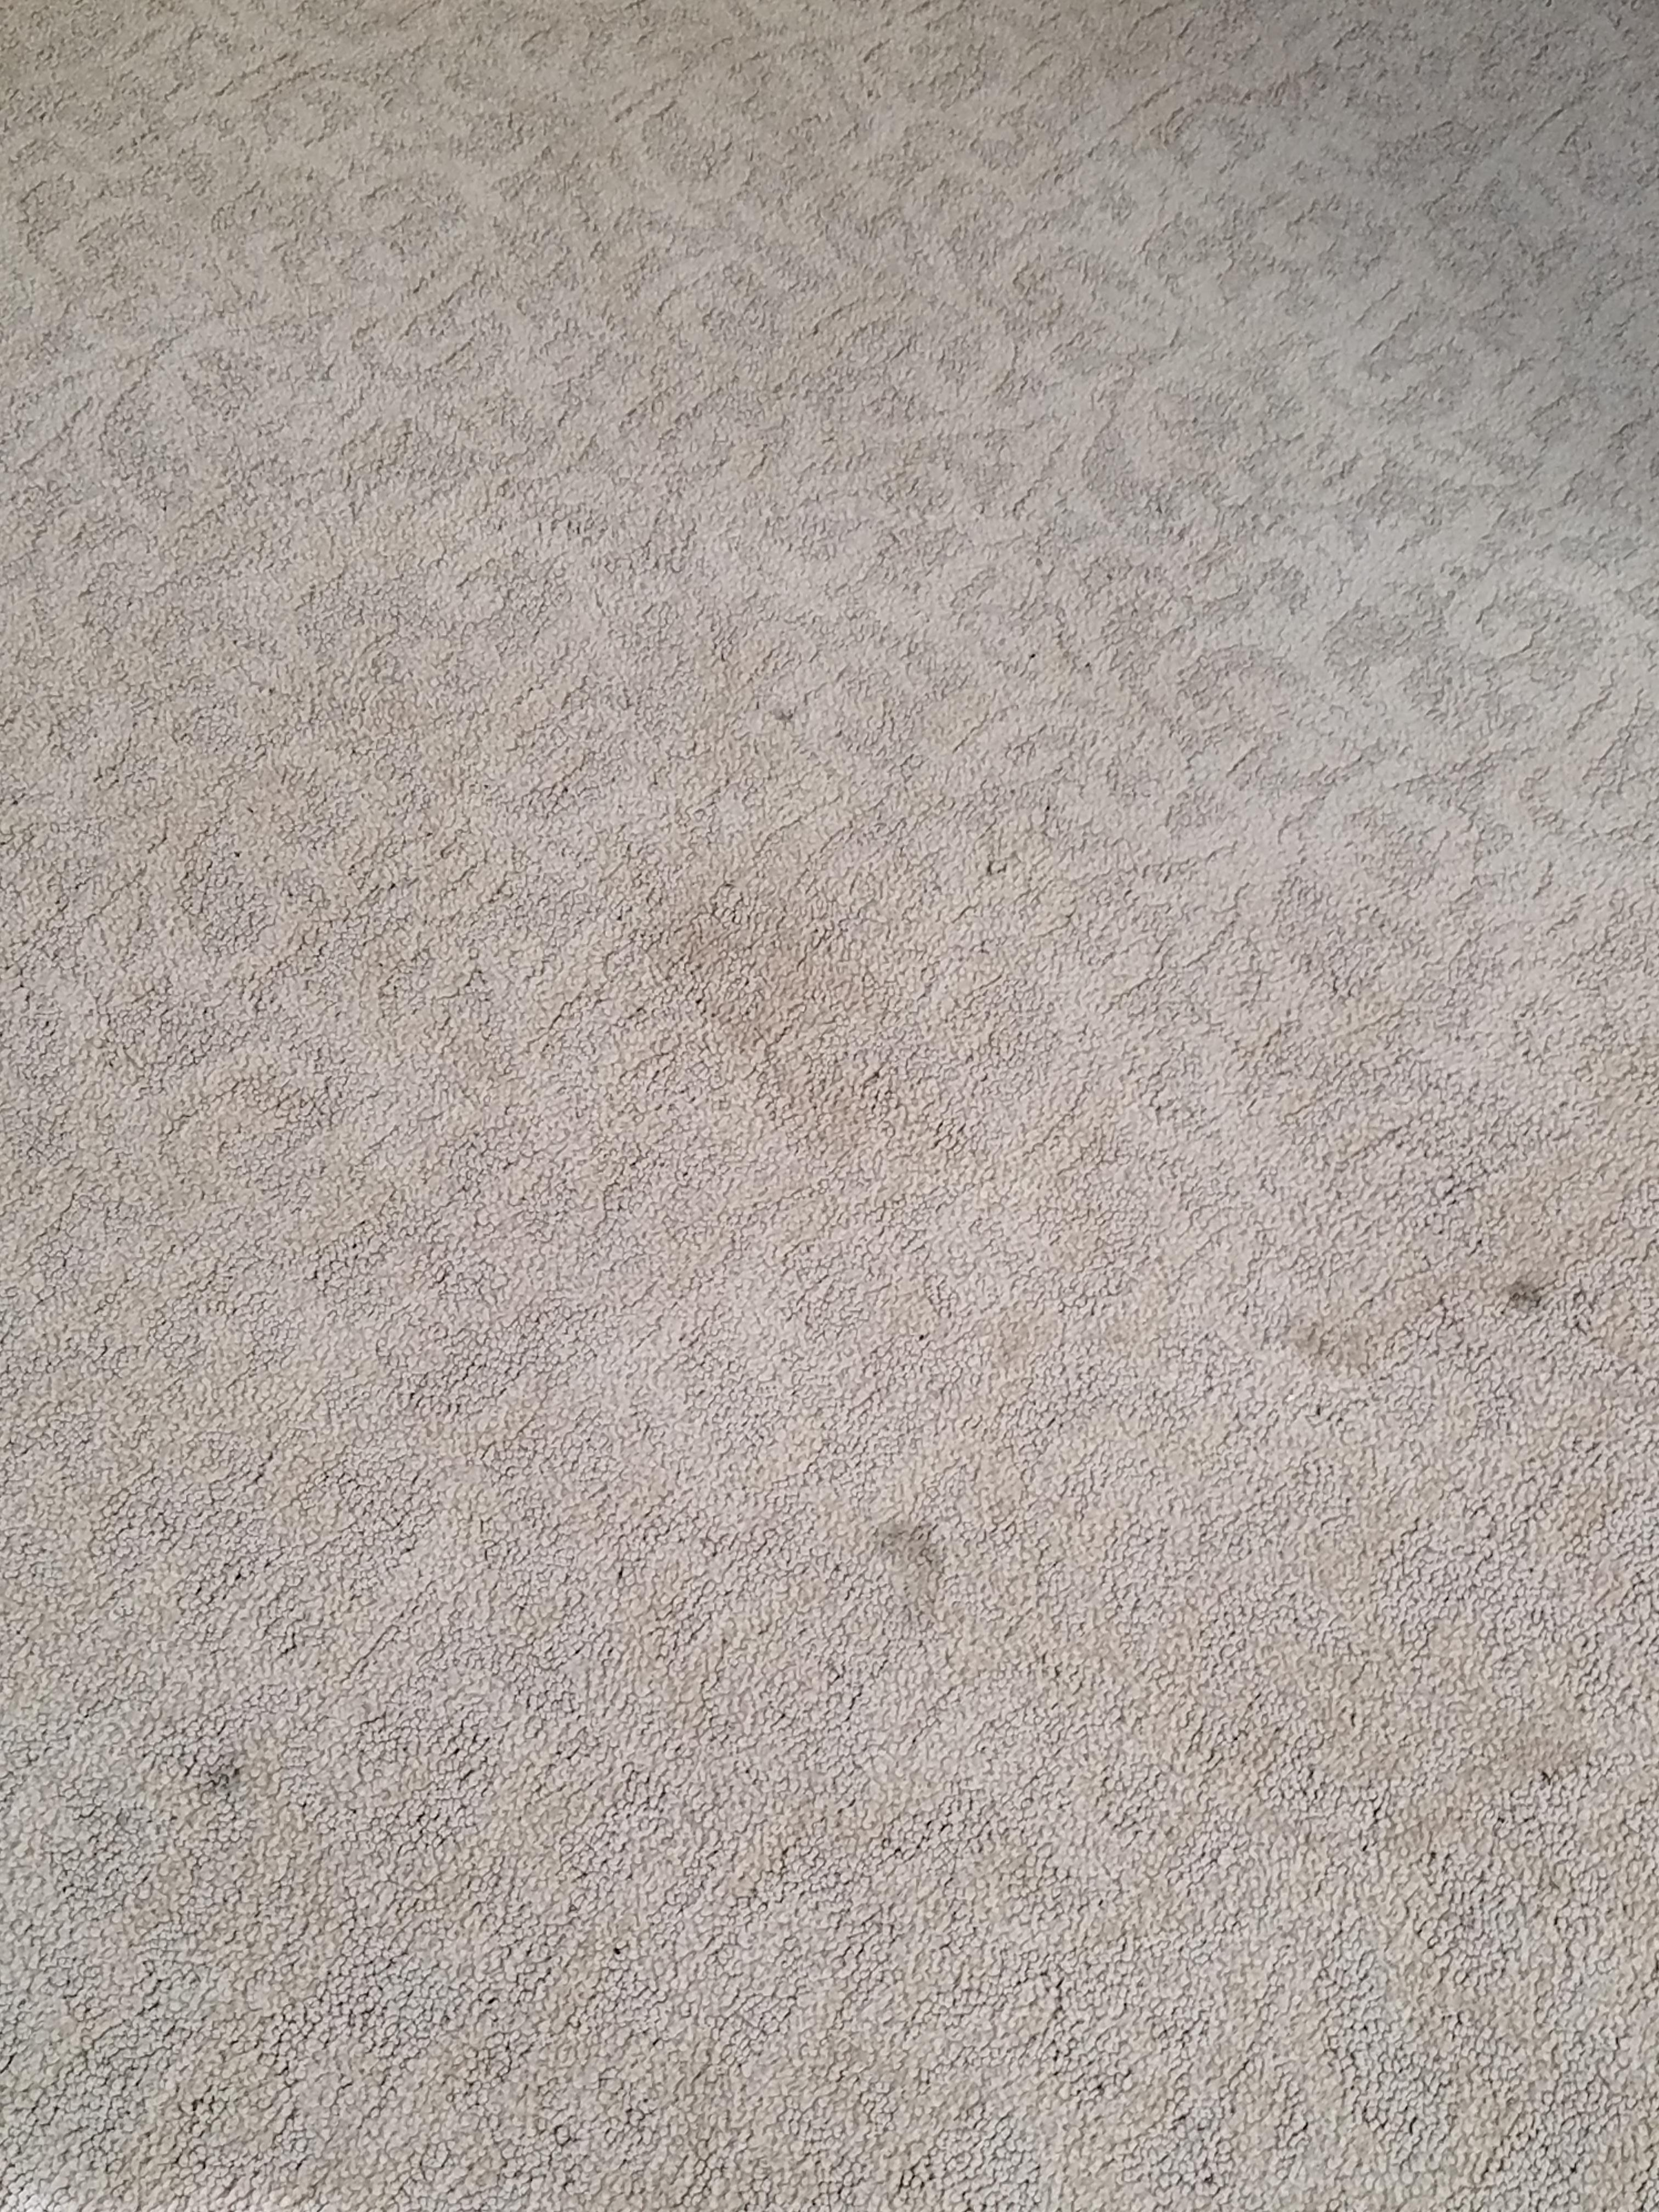 Spots and dirt on carpet